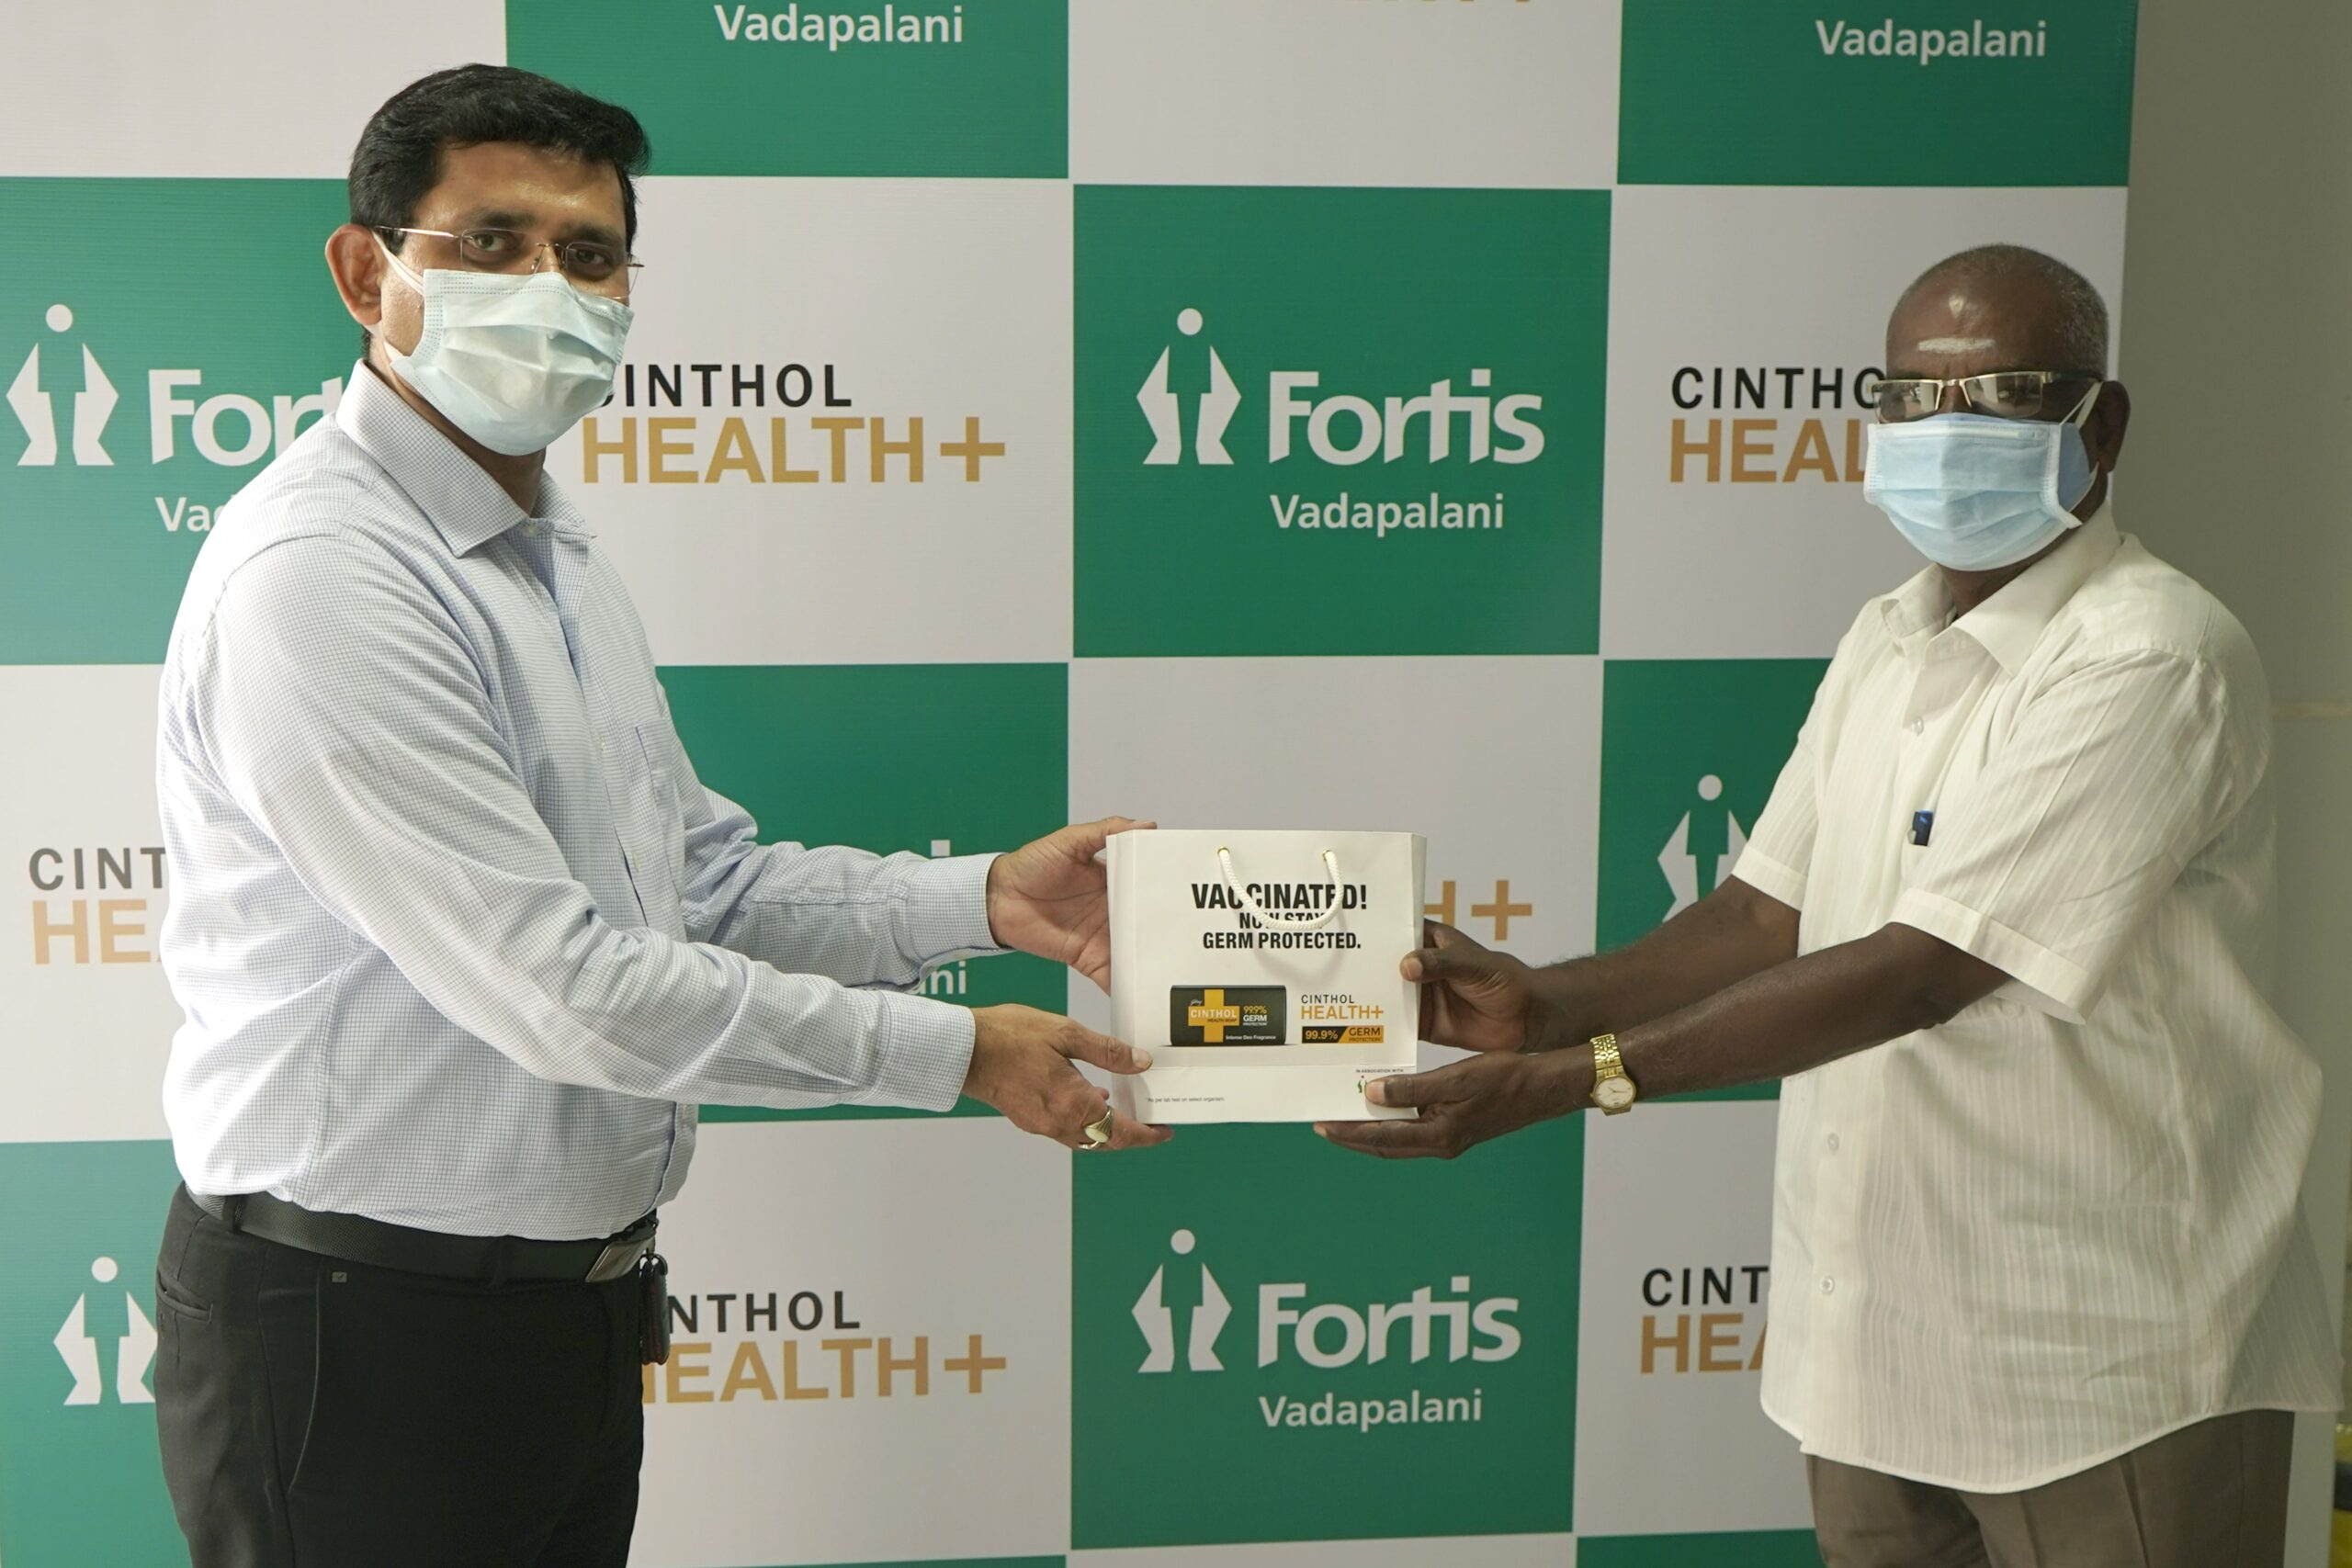 Cinthol Health Plus and Fortis announce a partnership initiative for post COVID-19 vaccine sensitization